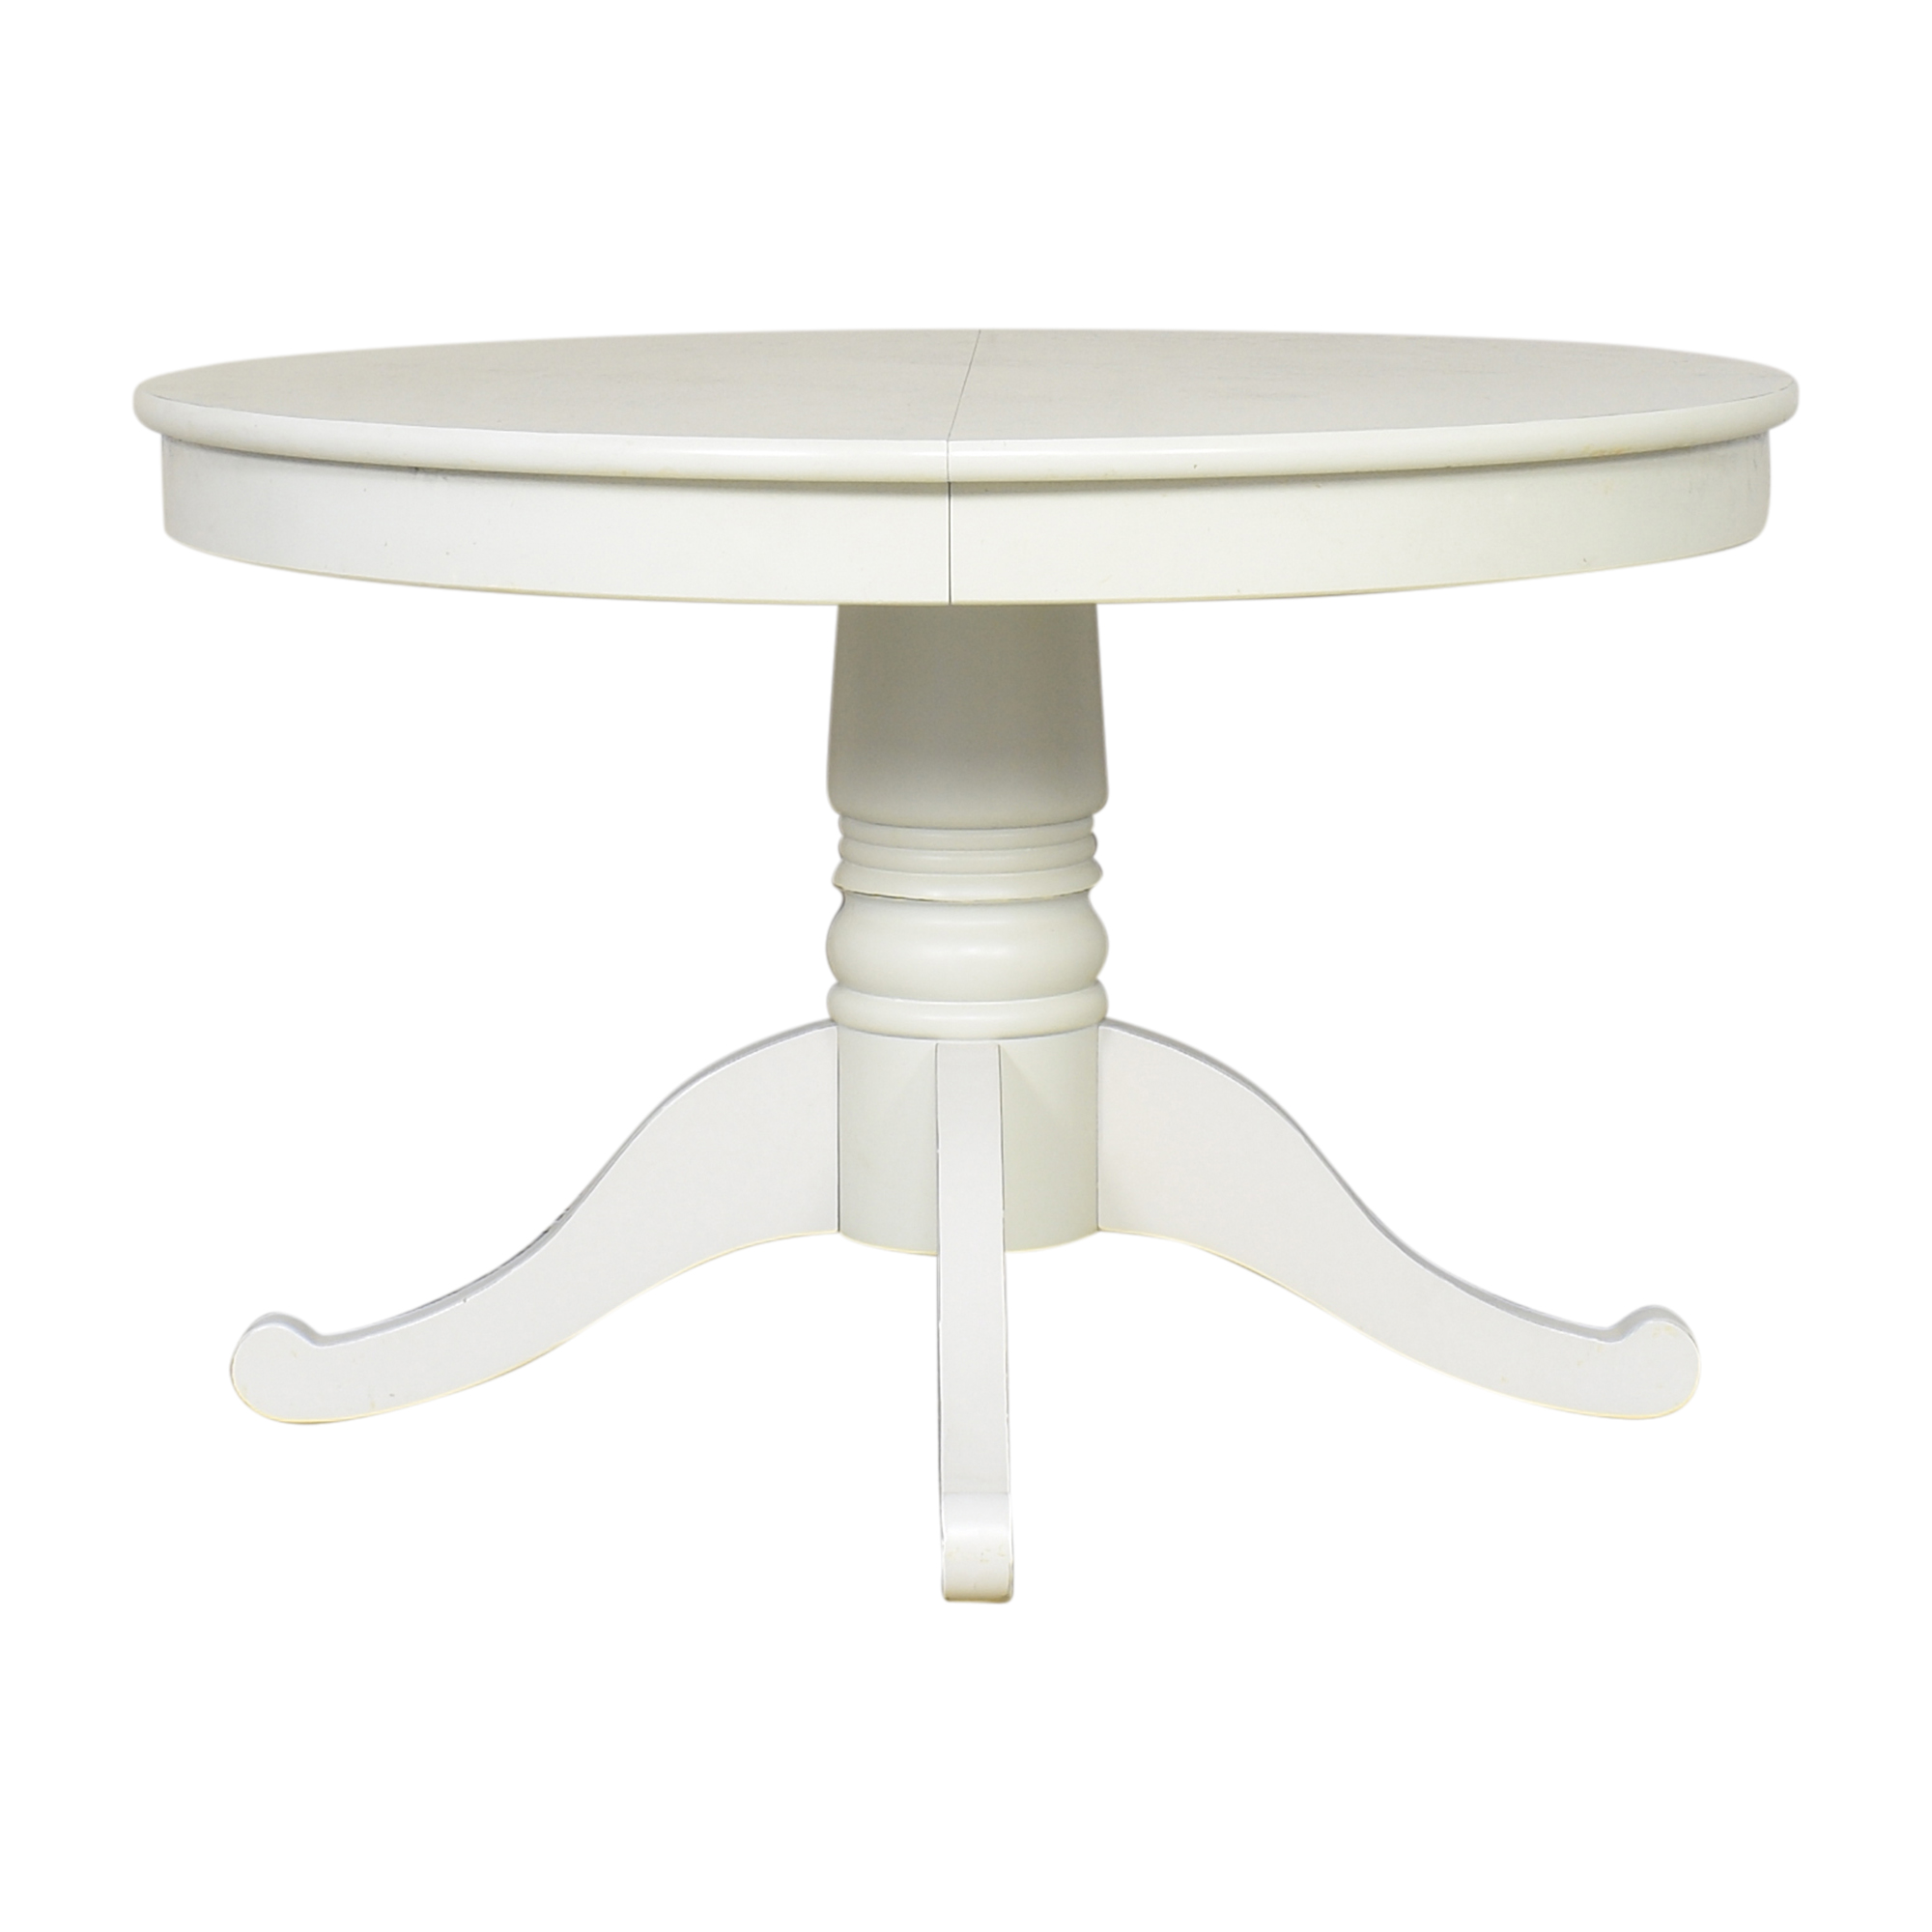 Crate & Barrel Crate & Barrel Avalon Extension Dining Table on sale